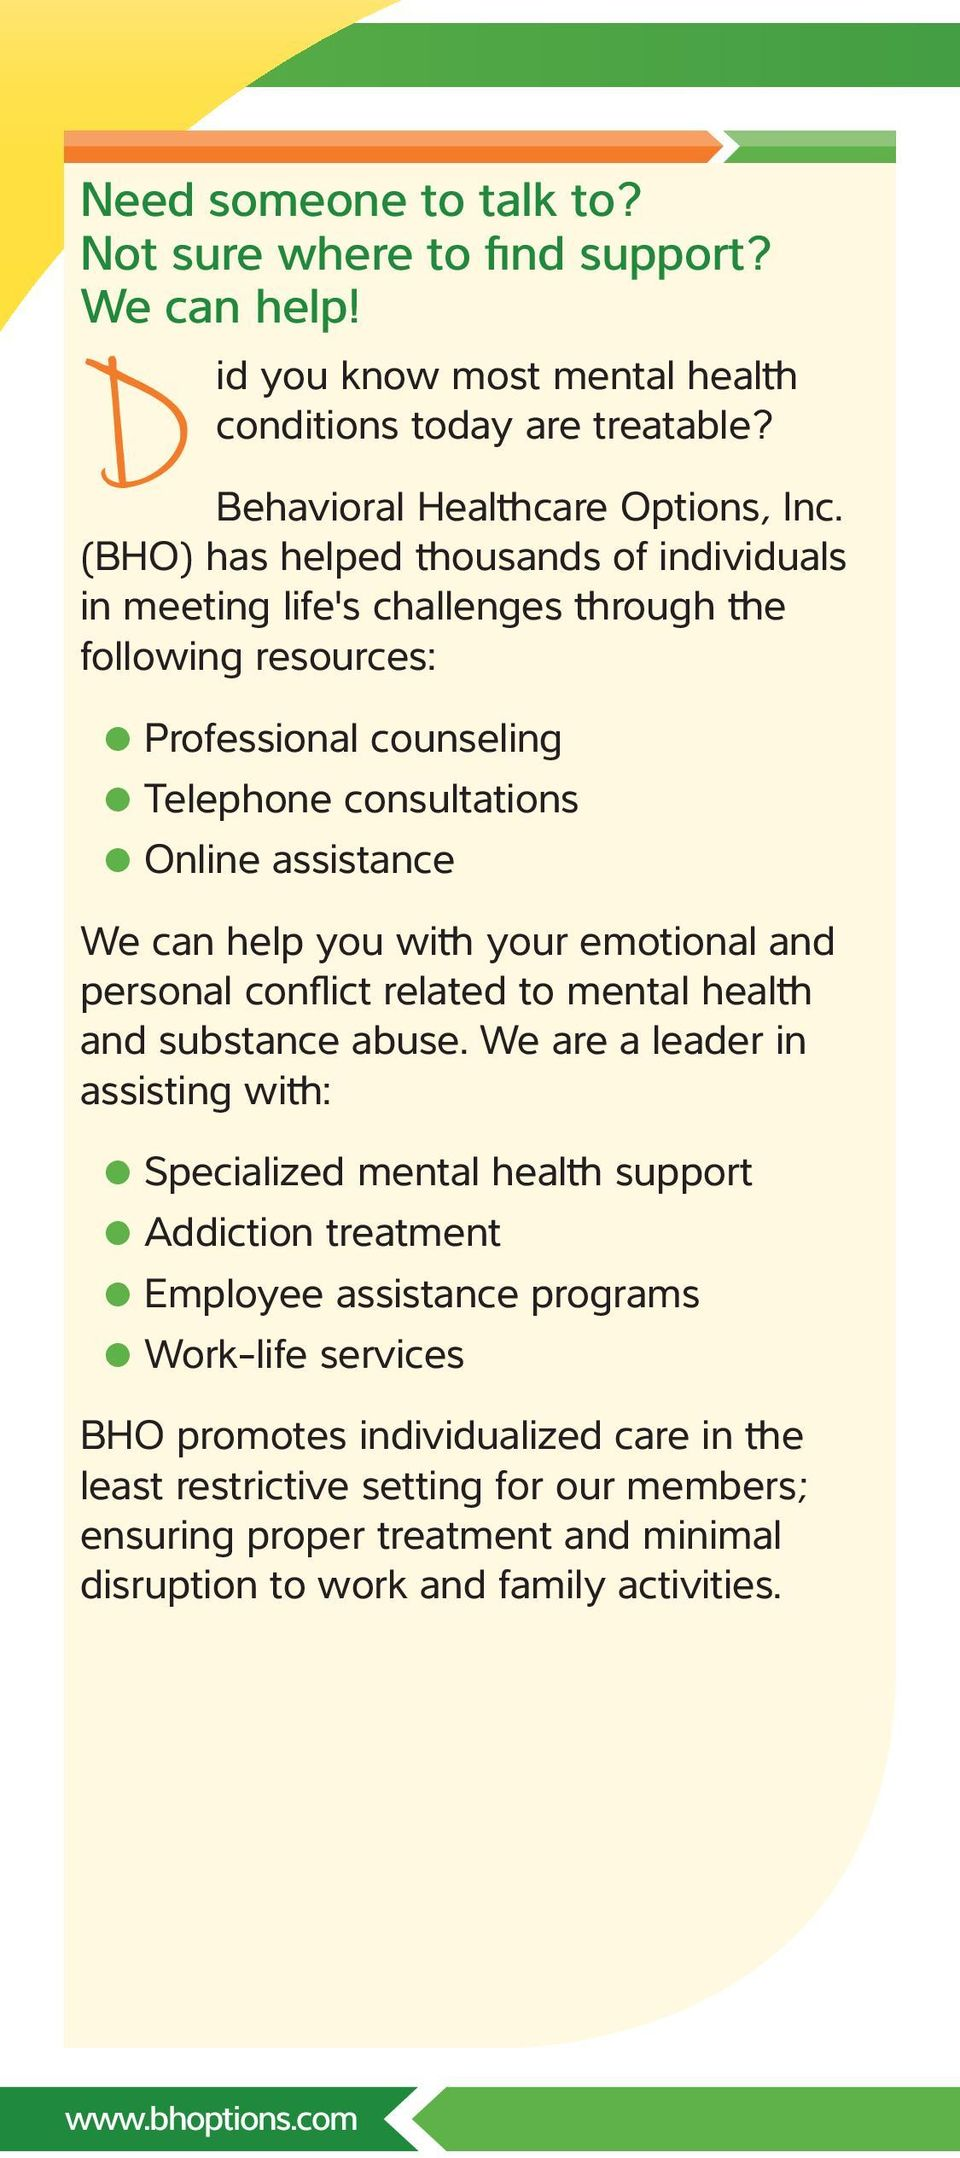 your emotional and personal conflict related to mental health and substance abuse.